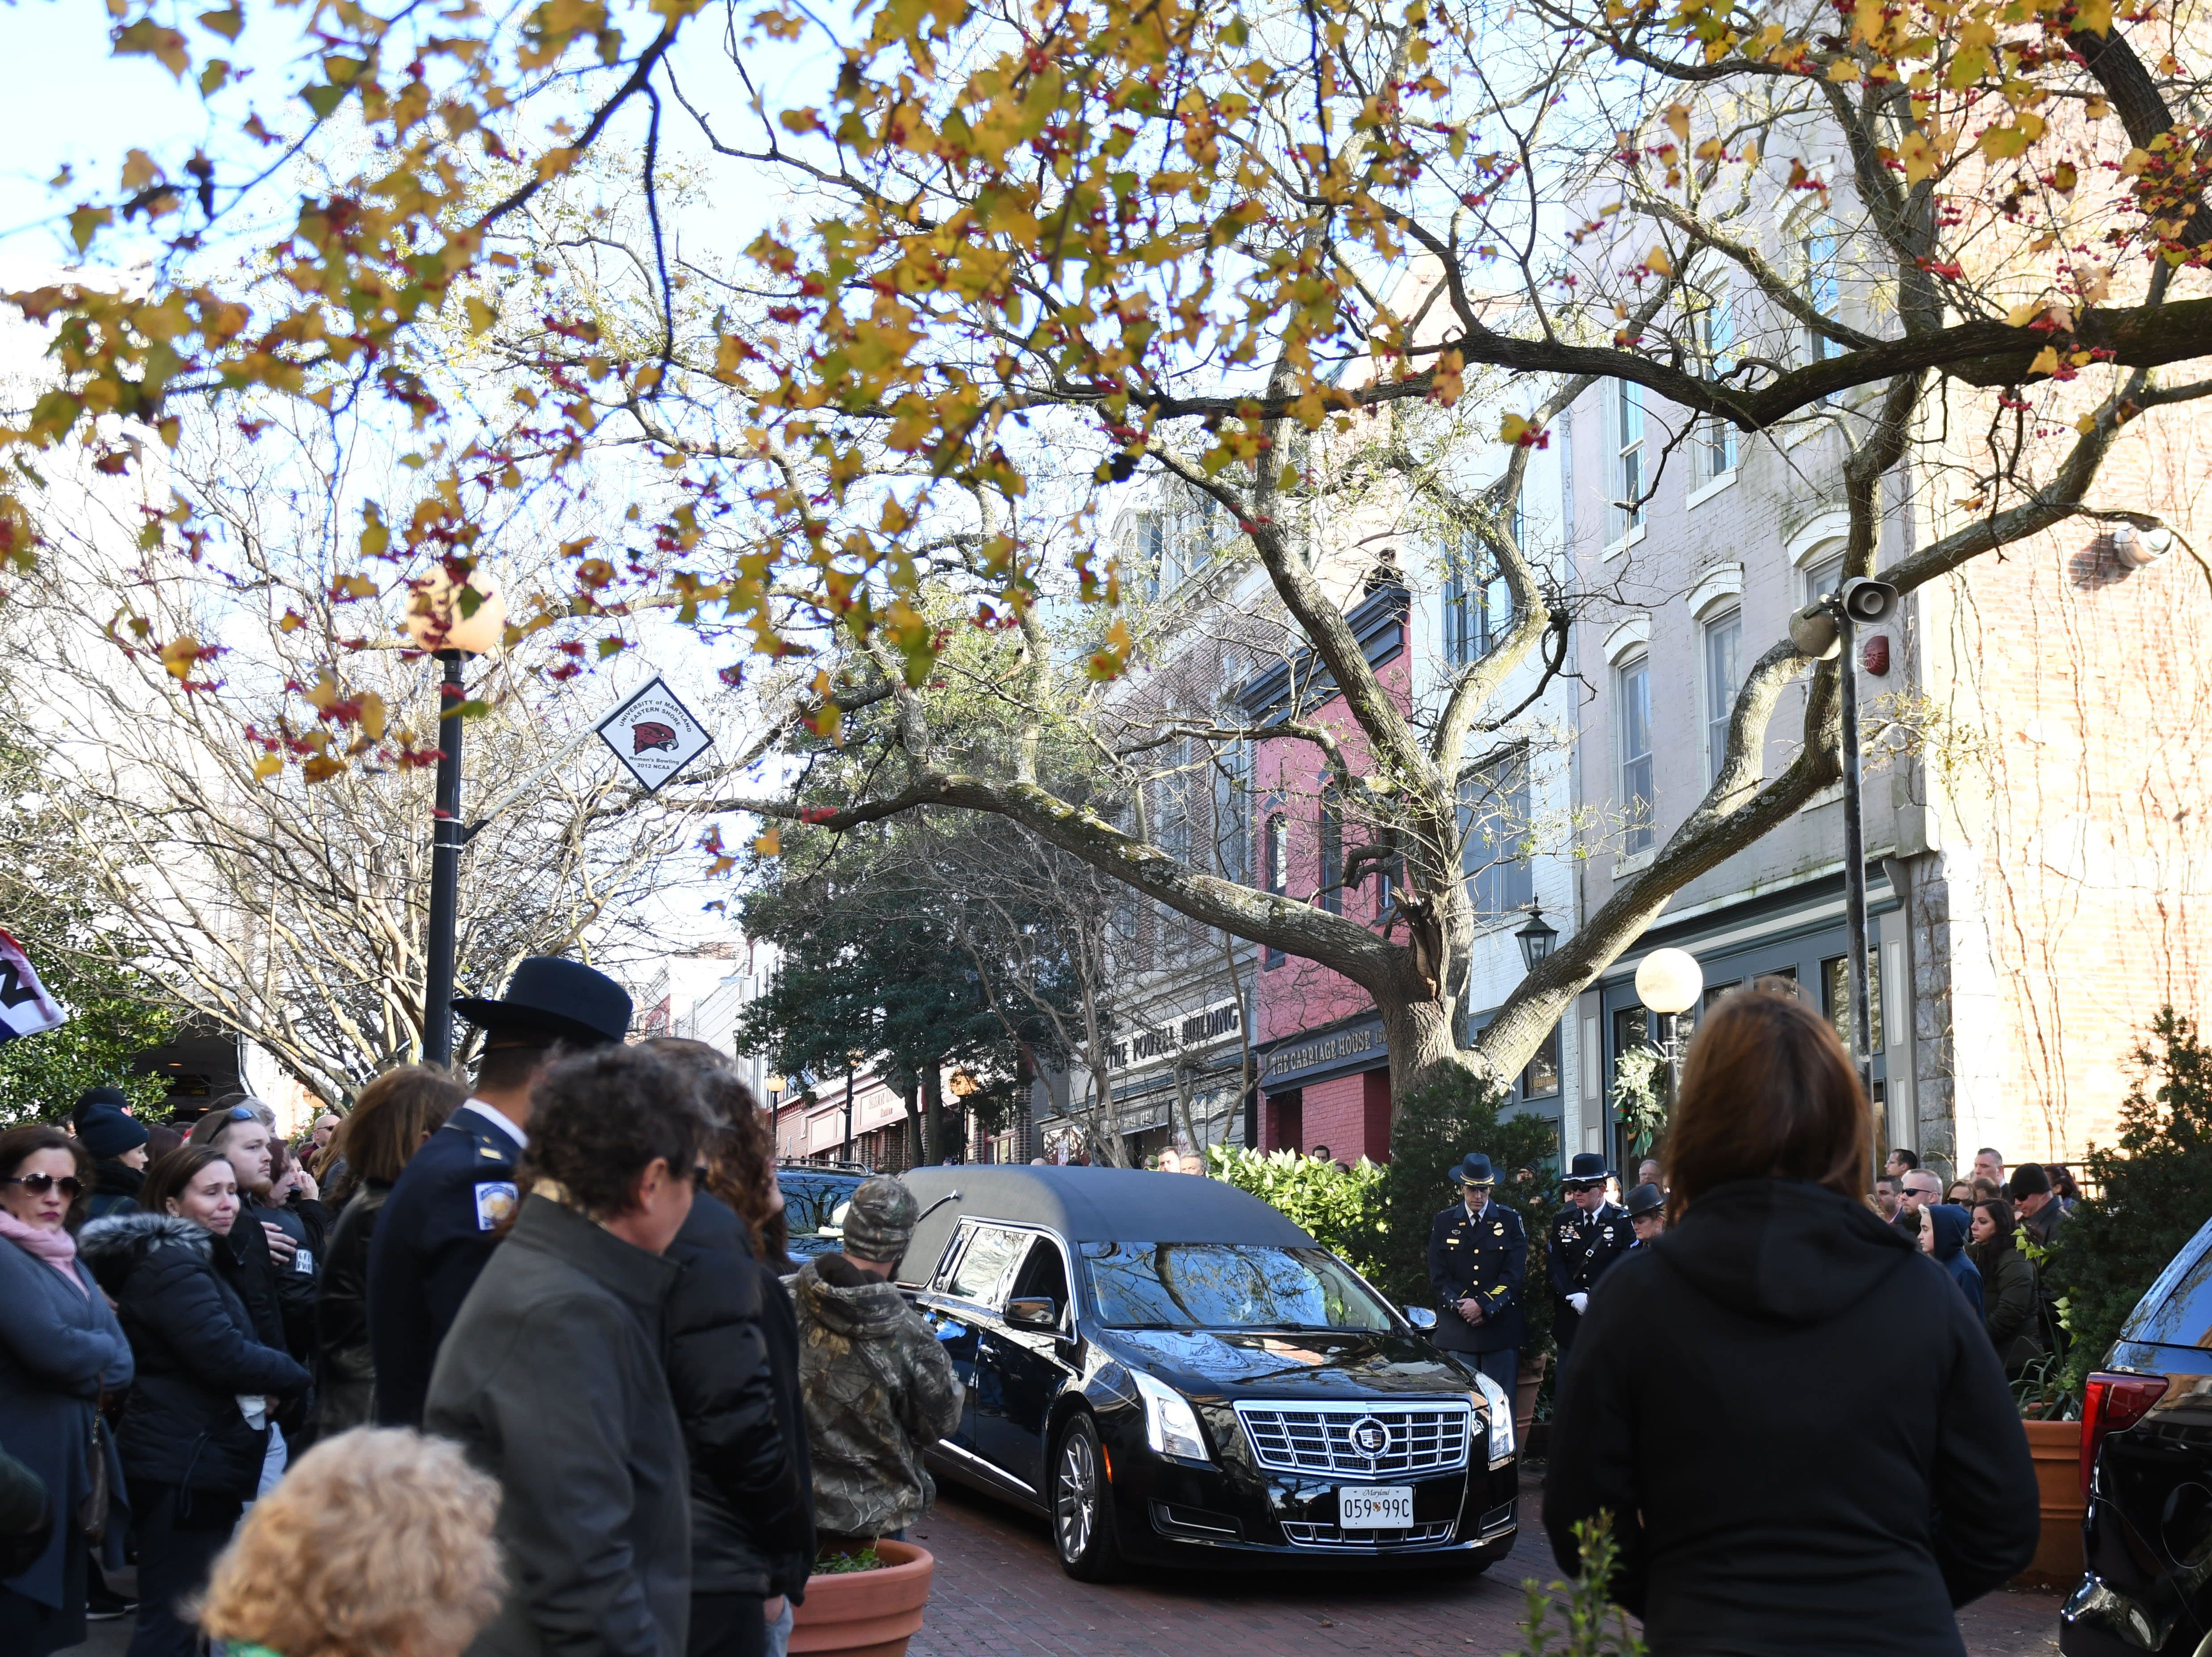 """Members of the community gathered on the downtown plaza on Tuesday, Nov. 27, 2018, for a moment of silence and a last call for Salisbury Police Officer Aaron """"Bull"""" Hudson who died unexpectedly while off duty on Nov. 19, 2018."""